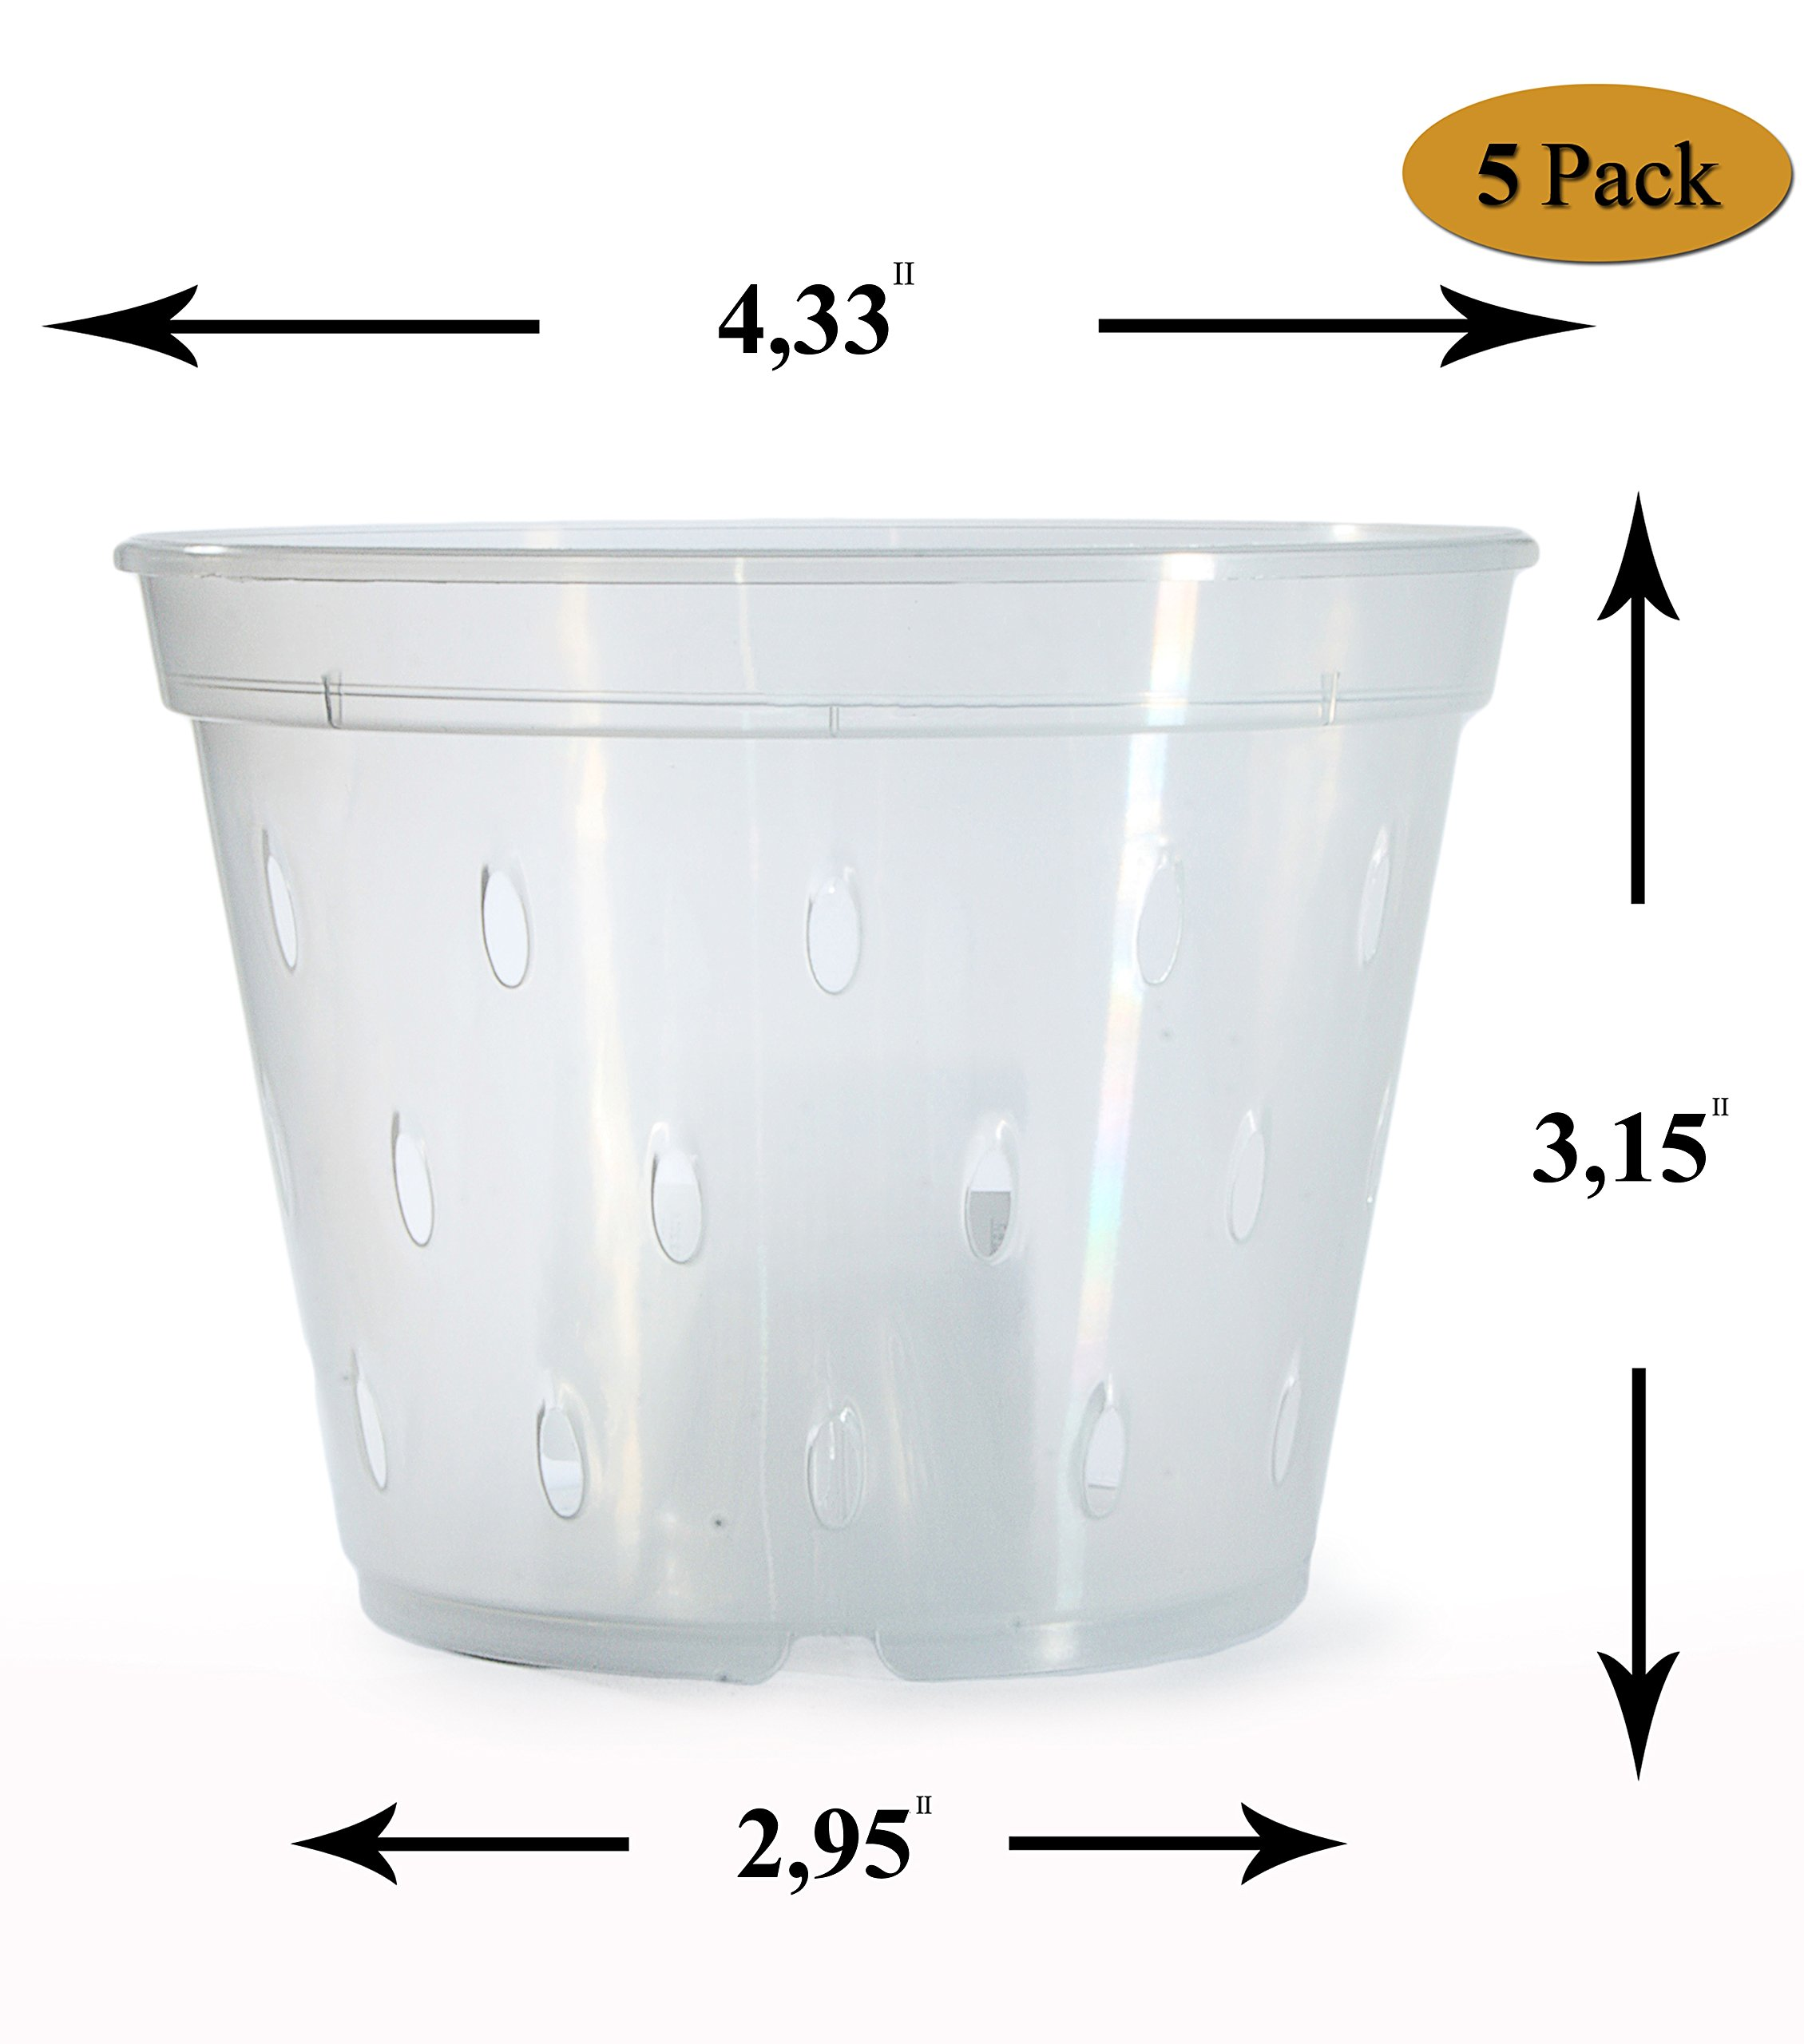 Orchid Pots With Holes Plastic-Orchid Pot-Clear Orchid Pot-4.5 inch-Orchids Pot-Plastic Orchid Pots-Pots For Orchids-Slotted Orchid Pot-Clear Plastic Pot-Orchid Flower Pot-Orchid Plant Pot-5 Pack